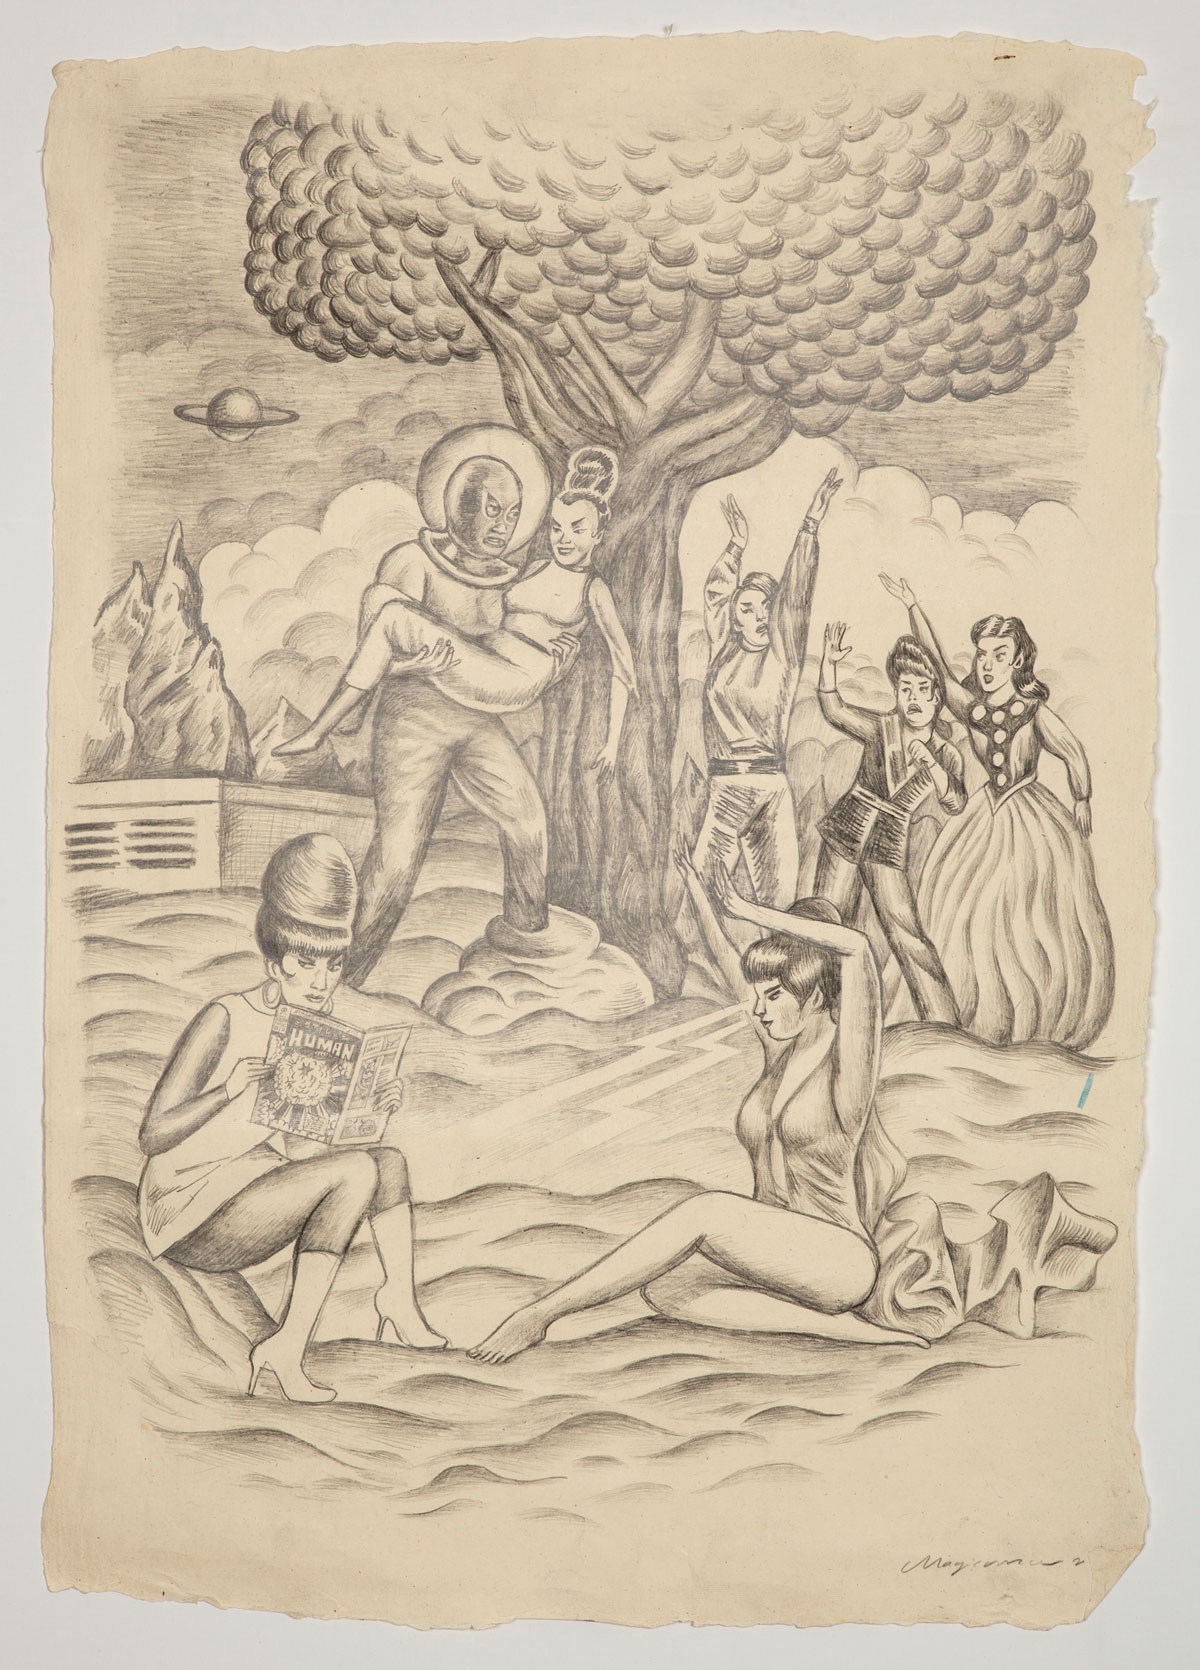 Sergio Mora, We don´t wanna heroes, 2019, pencil on paper, 80x55 cm